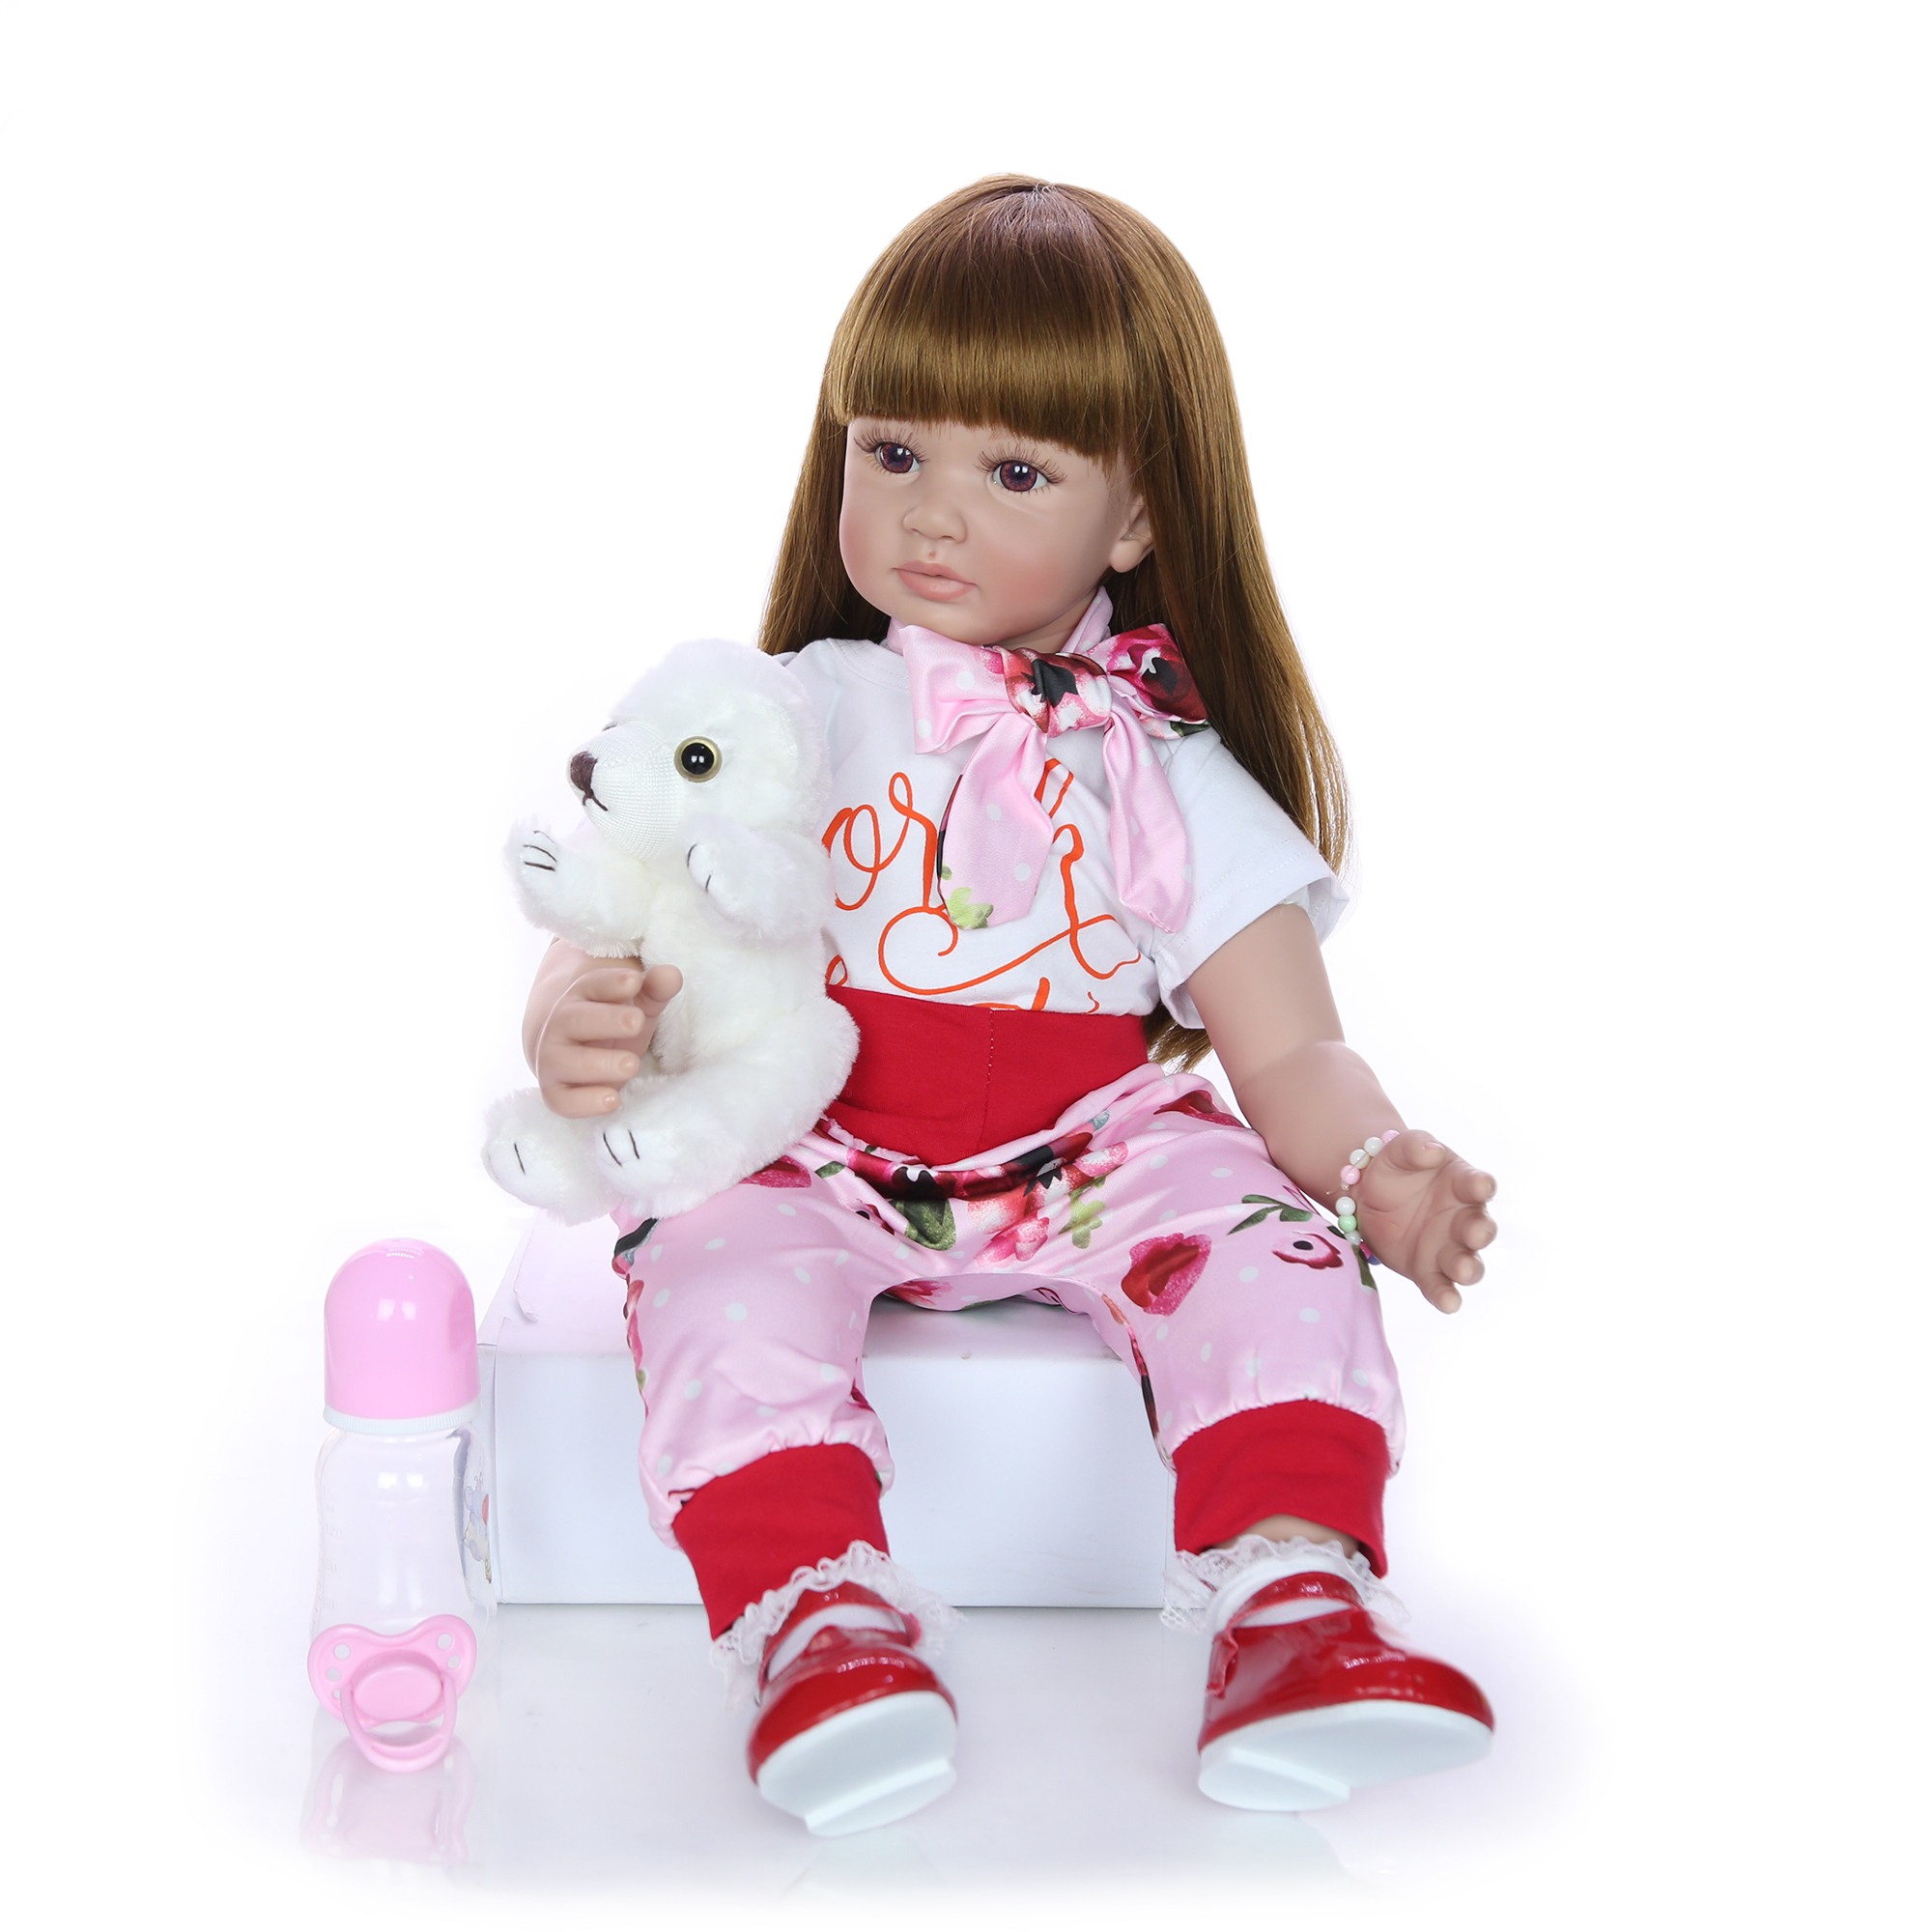 Image 3 - Fashion 24 Inch Reborn Baby Doll 60 cm Silicone Soft Realistic Princess Girl Babies Doll Toy Ethnic Doll For Children's Day Gift-in Dolls from Toys & Hobbies